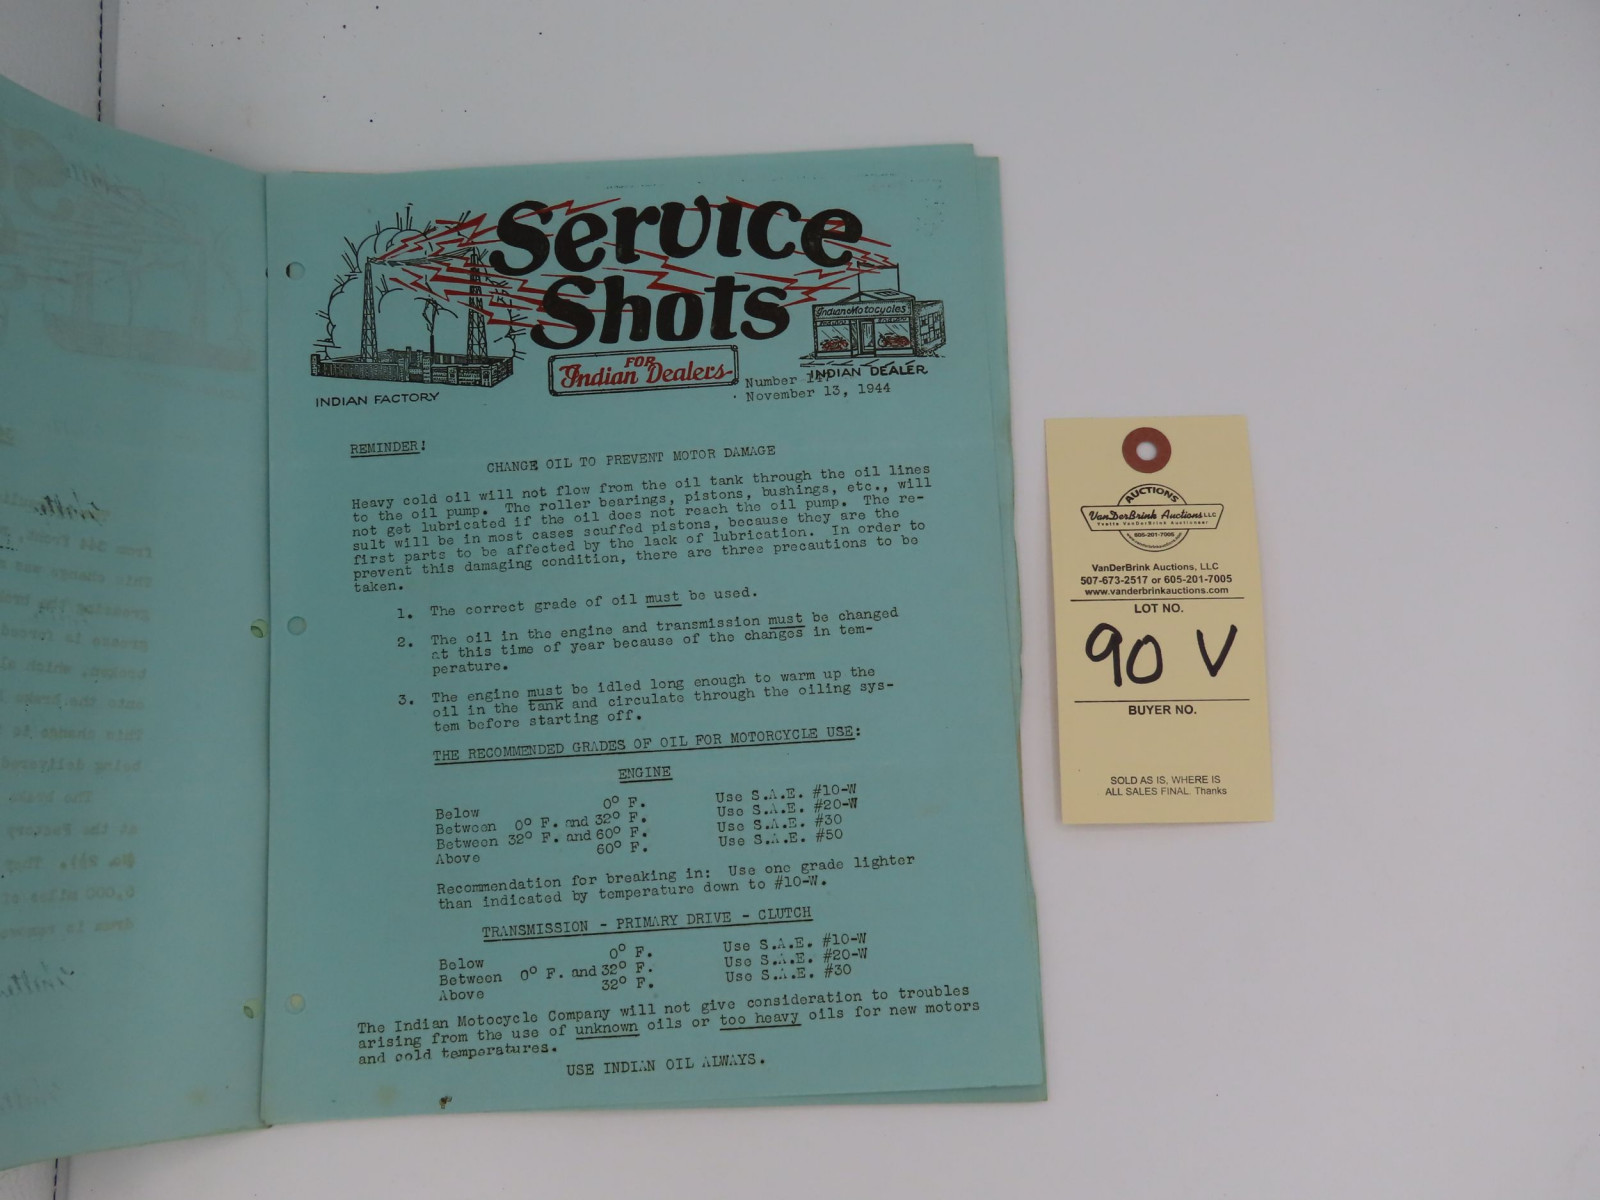 Service Shots for Indian Dealers, dated December 26, 1939 - Image 2